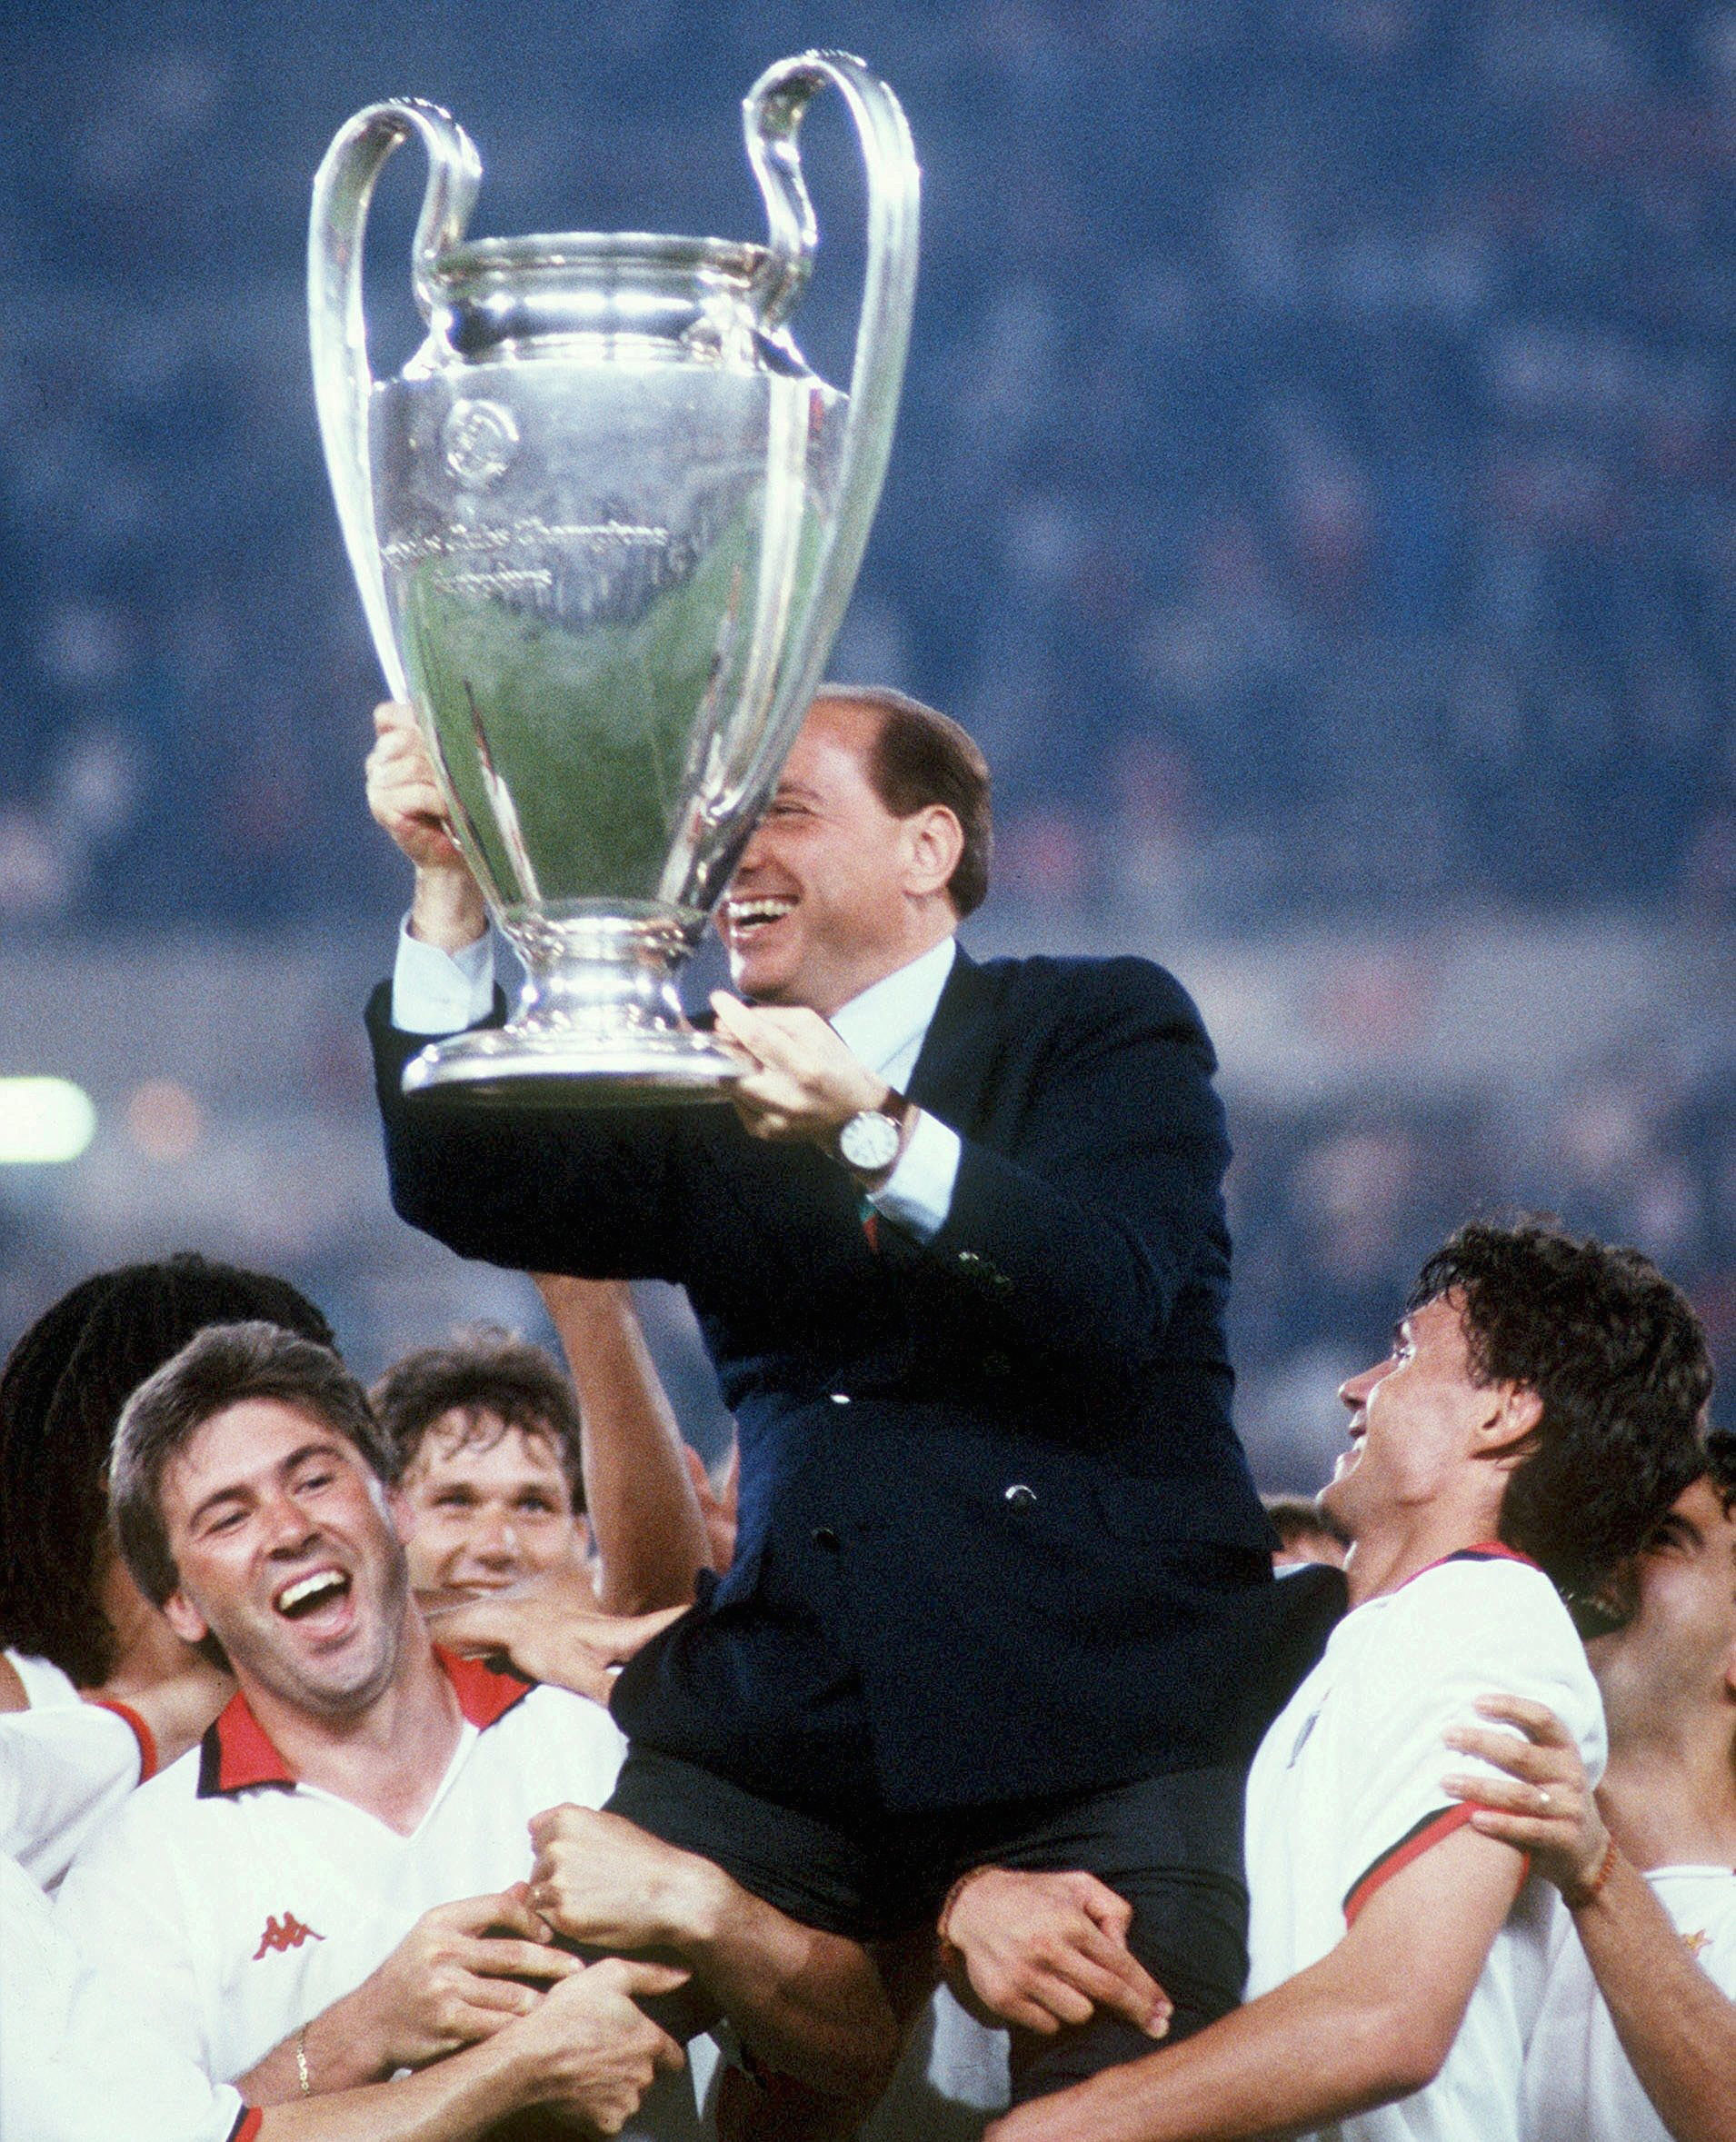 Silvio Berlusconi, former Italian Prime Minister and owner of AC Milan from 1986-2017, celebrates the team's 1994 win in the Europa League. Photo by Bongarts/Getty Images